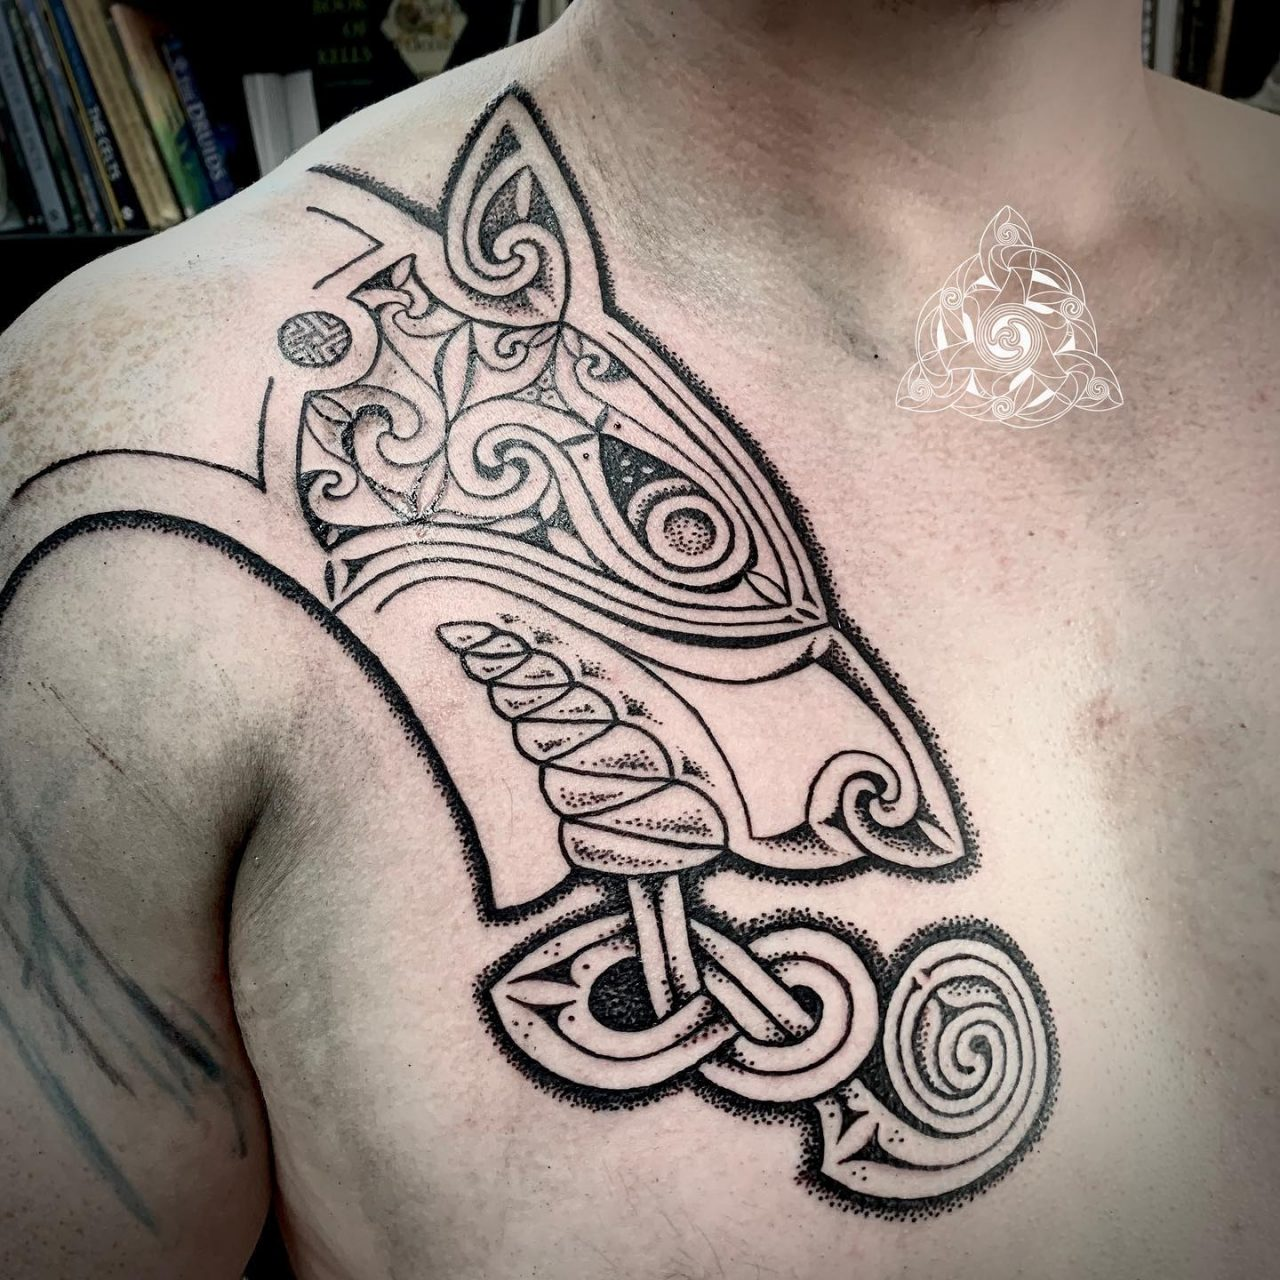 Insular Celtic Dog Tattoo by Sacred Knot